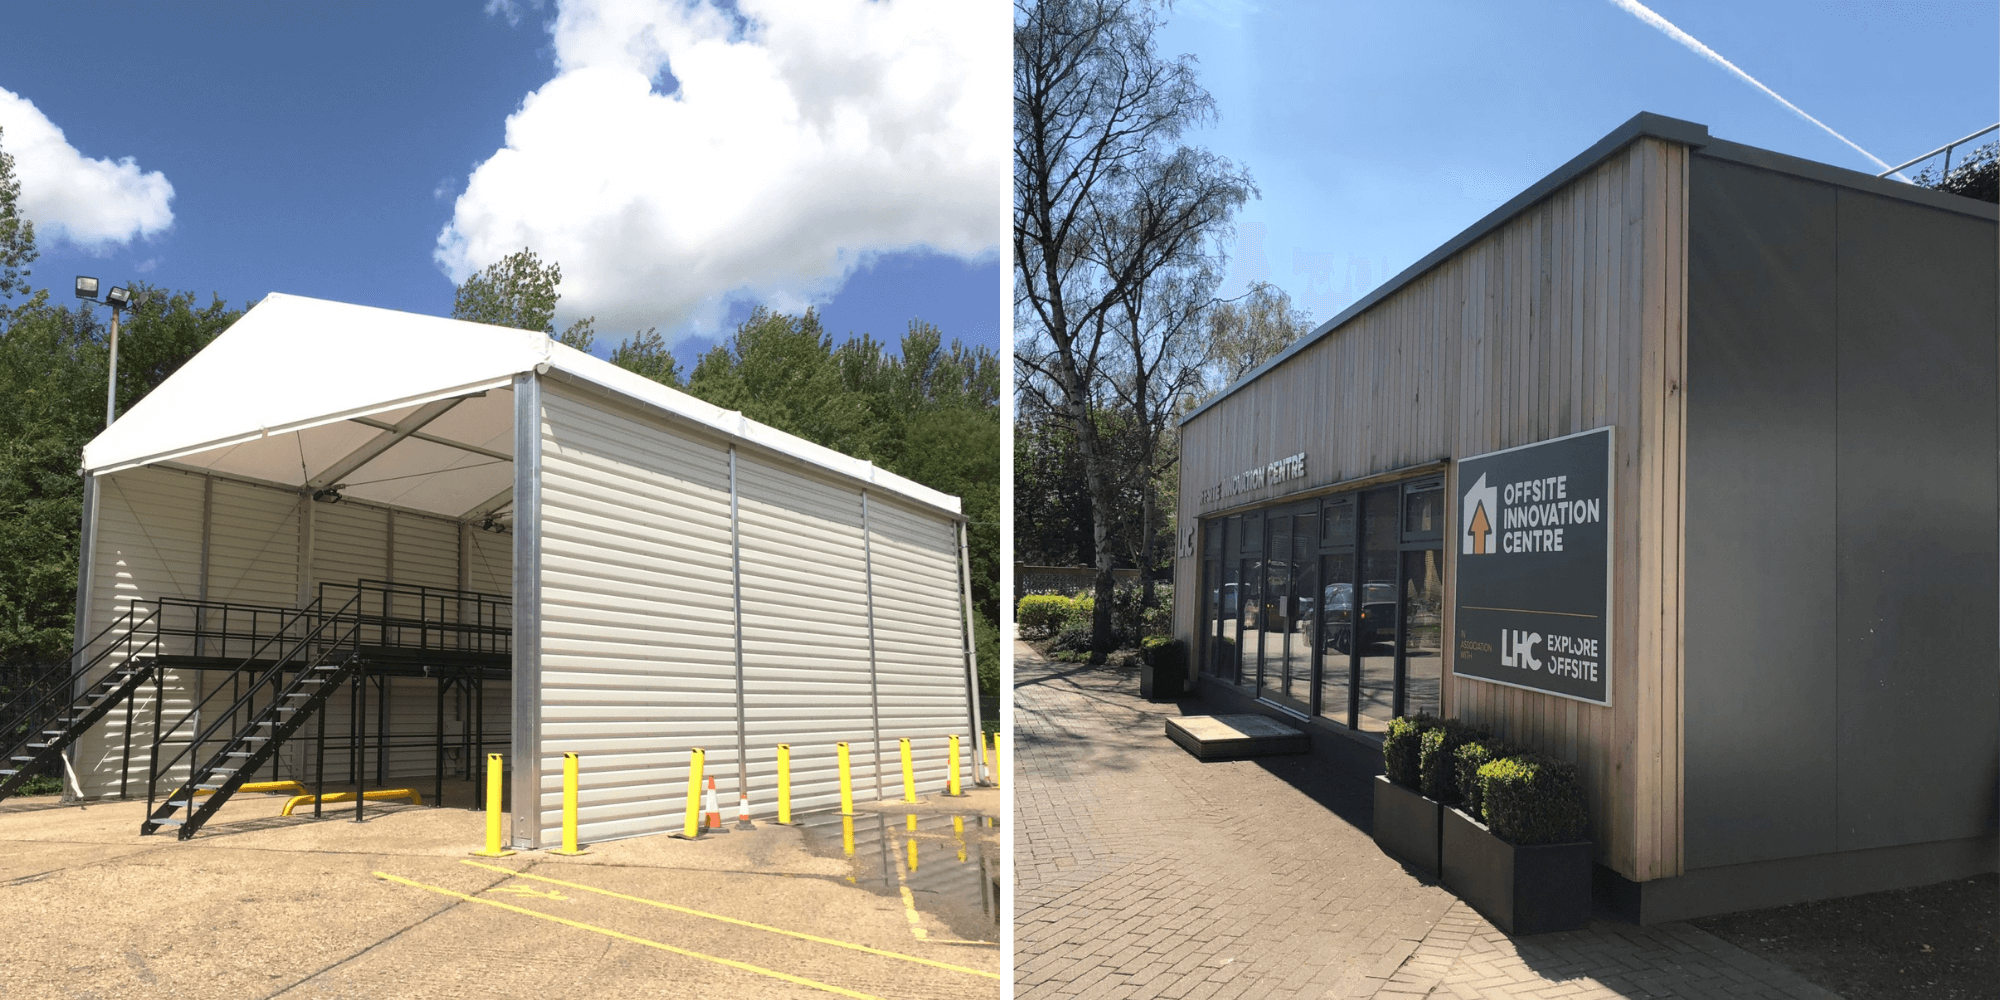 Examples of temporary buildings